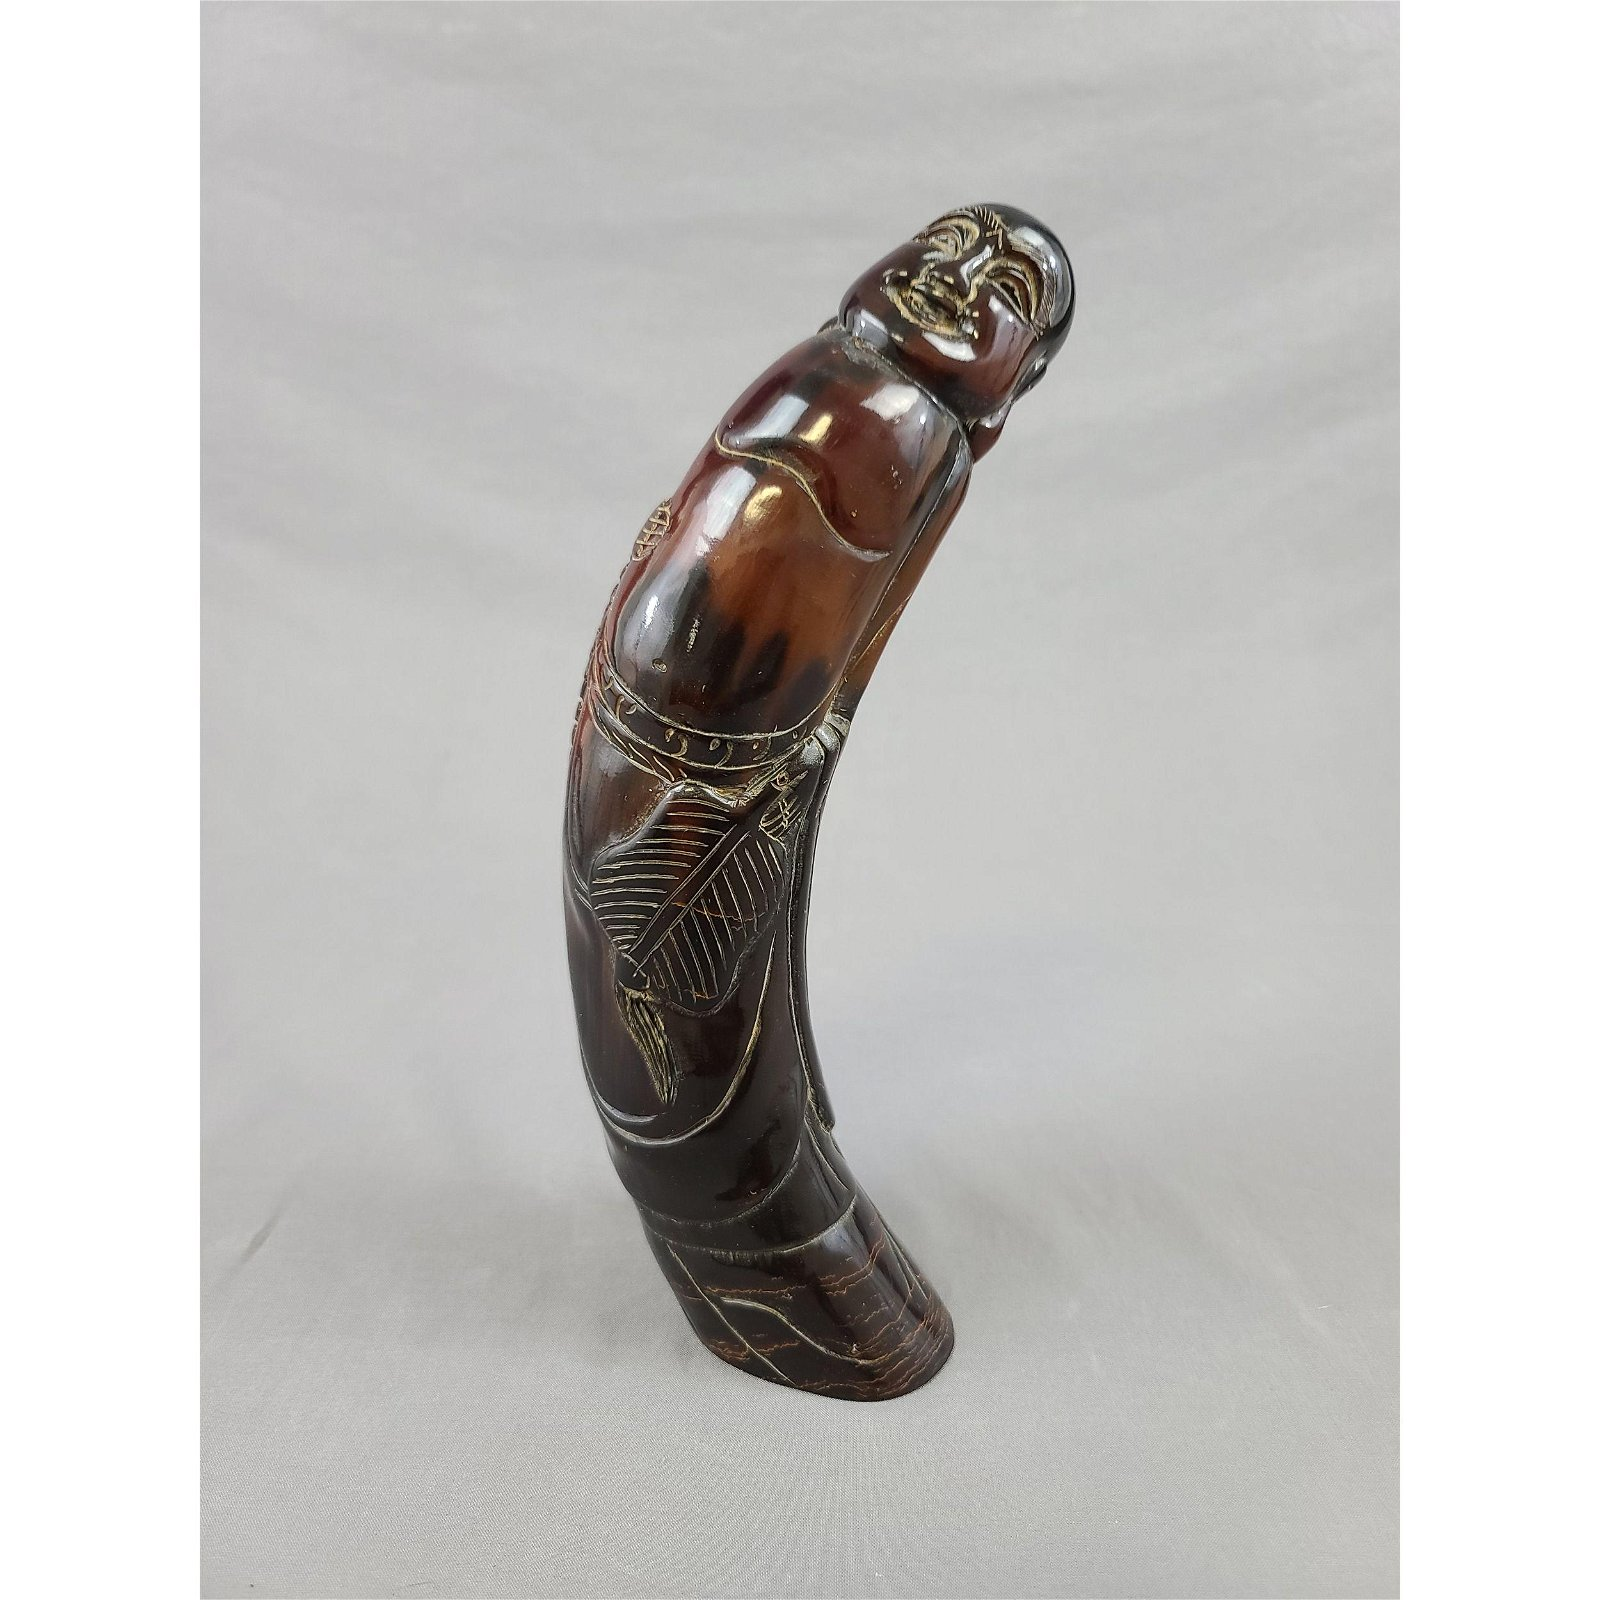 Carved Chinese Ox Horn Buddha Deity Statue.